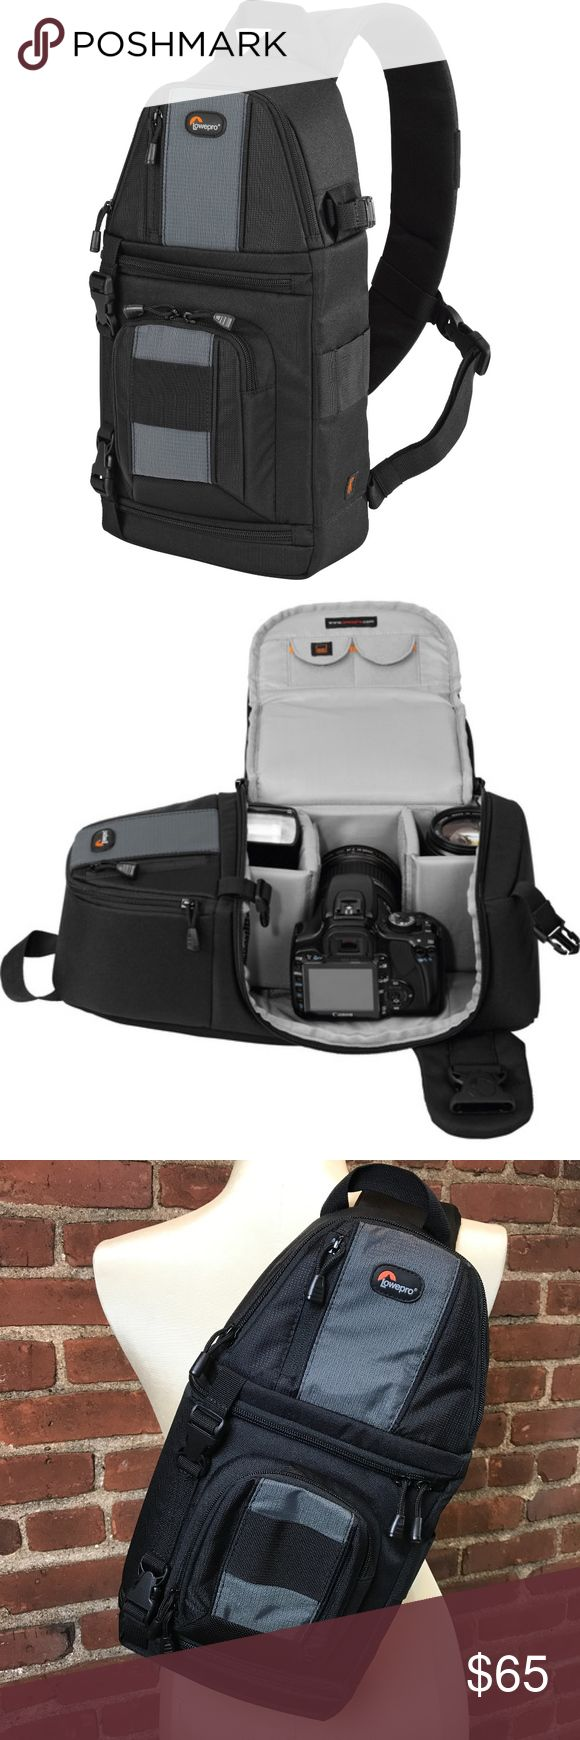 """Lowepro Slingshot 102 AW Camera Bag LOWEPRO """"SLINGSHOT 102 AW"""" CAMERA BAG  Exterior dimensions Width: 8.3 Depth: 8.7 Height: 15.9  Interior dimensions Width: 6.3 Depth: 4.3 Height: 10.2  Features: -Easy glide zippers -Tripod holder -Padded divider system -2 memory card pockets -All weather cover -3 slip lock attachment loops Lowepro Bags"""